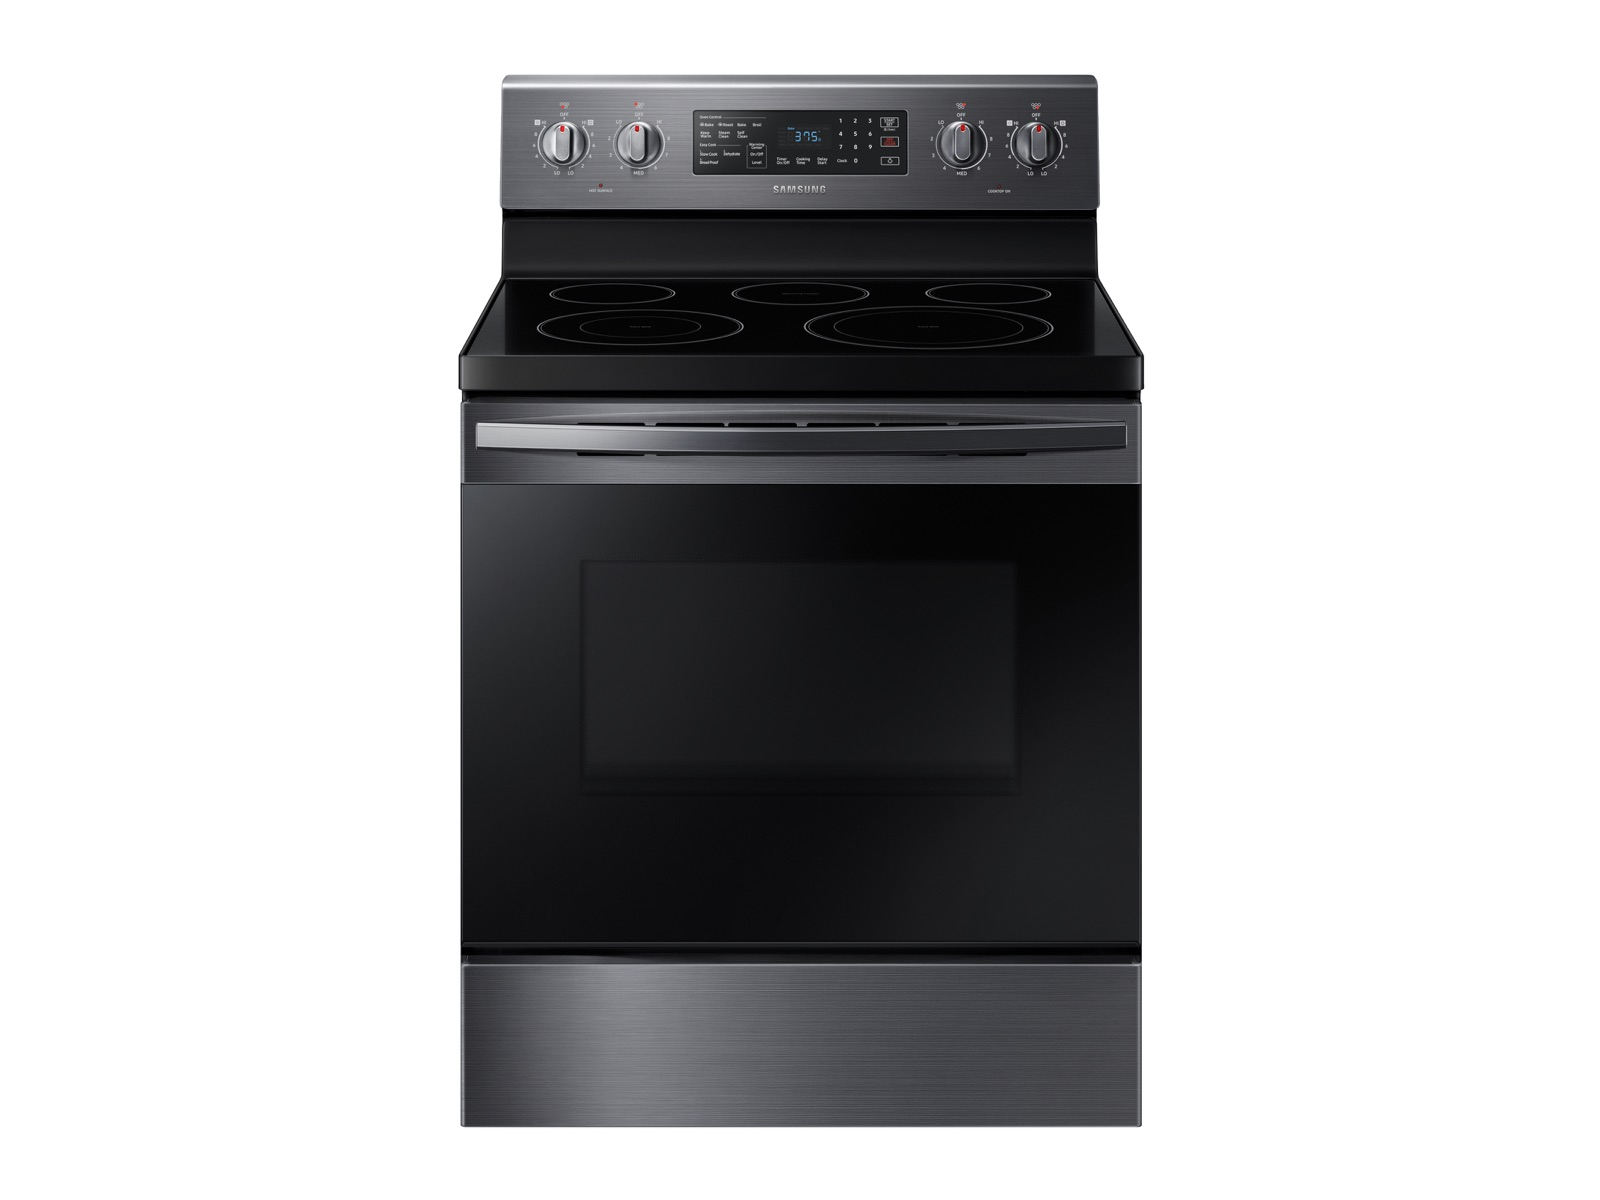 Samsung 5.9 cu. ft. Freestanding Electric Range with Convection in Black Stainless Steel, Fingerprint Resistant Black Stainless Steel